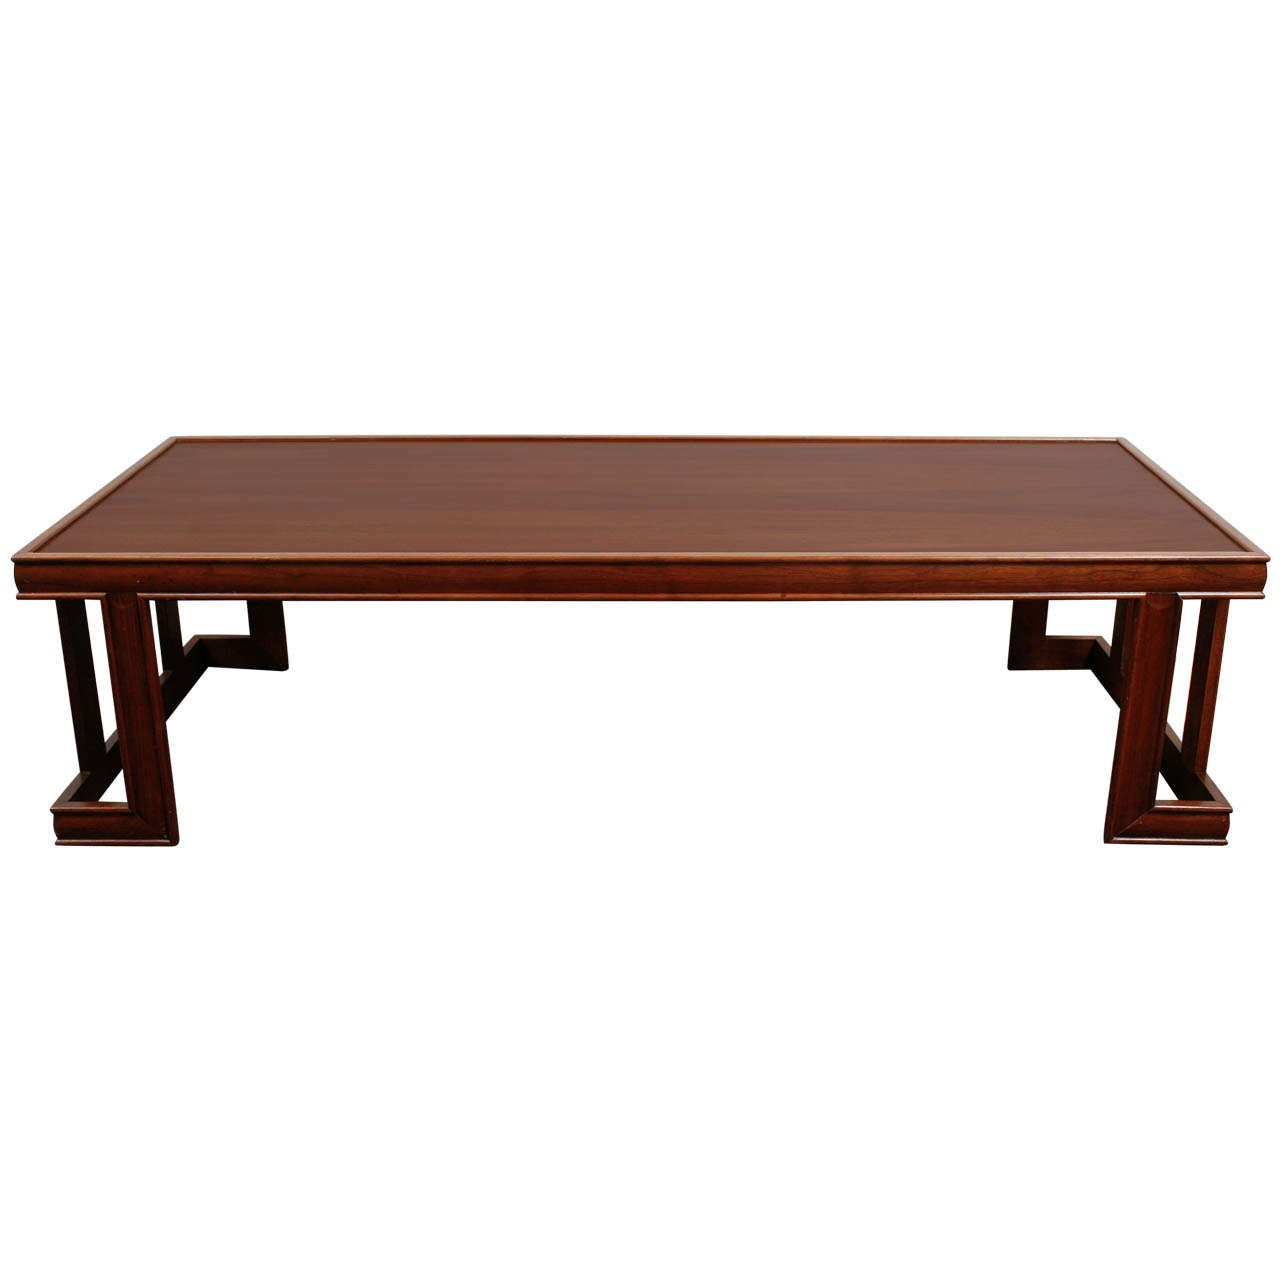 John Keal Brown Saltman Hexagonal Style Coffee Table At 1stdibs